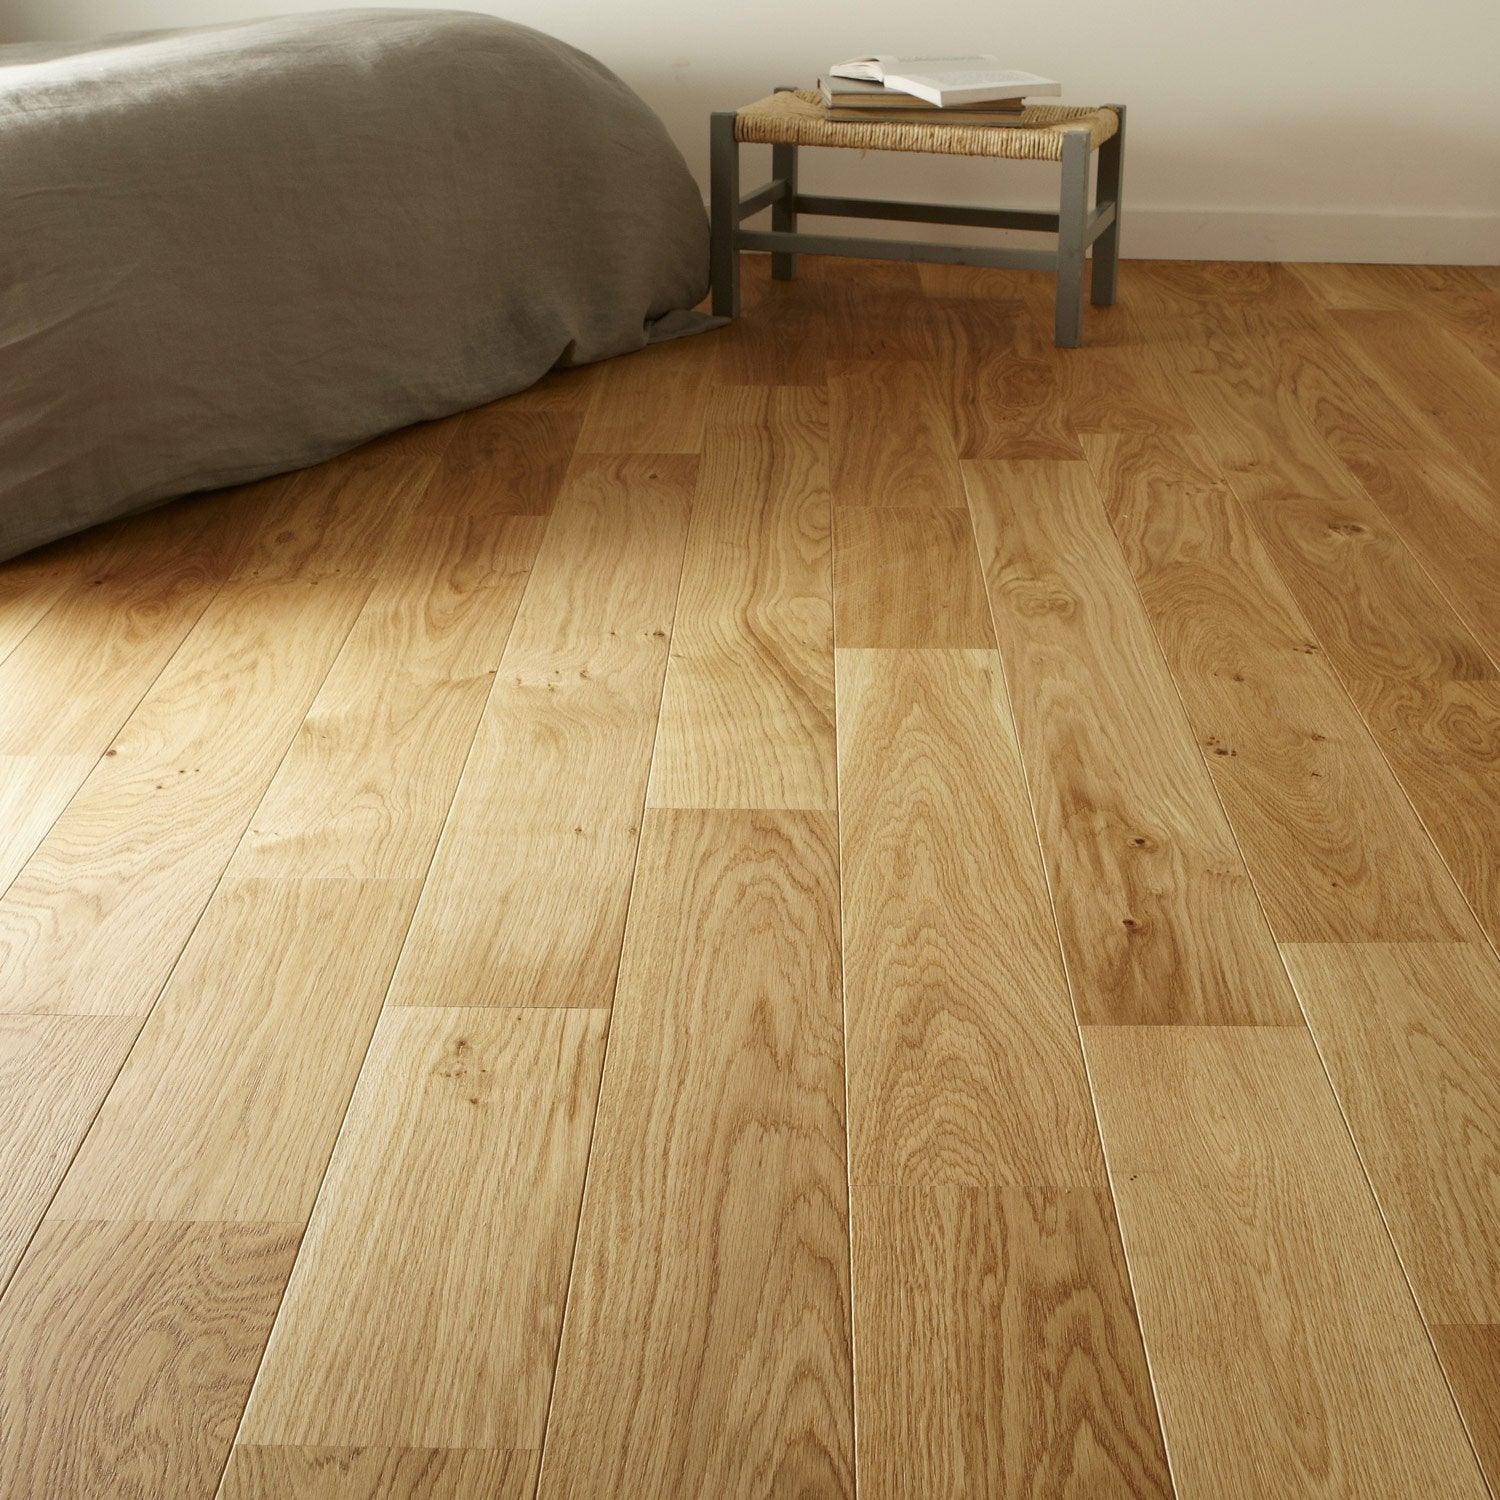 Parquet contrecoll ch ne blond vitrifi l broceliande for Prix pose carrelage imitation parquet